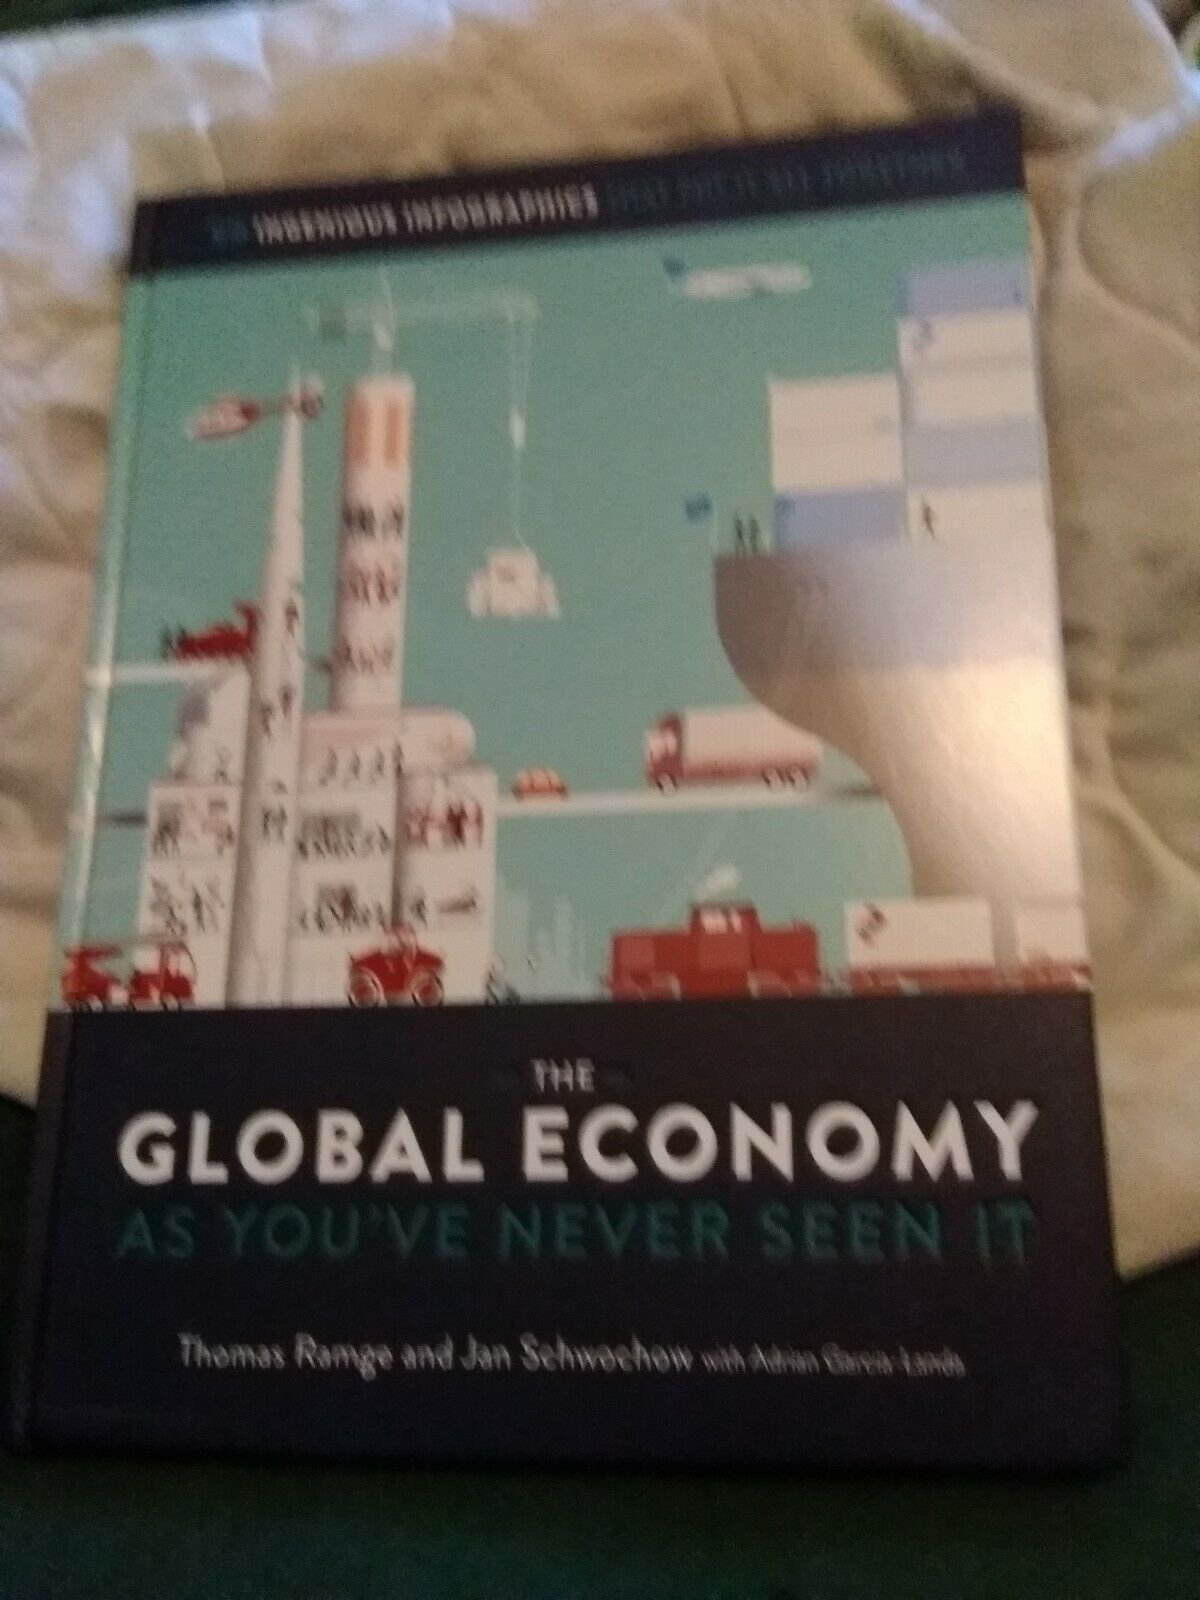 The Global Economy As You Have Never Seen It Oversize Text  - $6.75